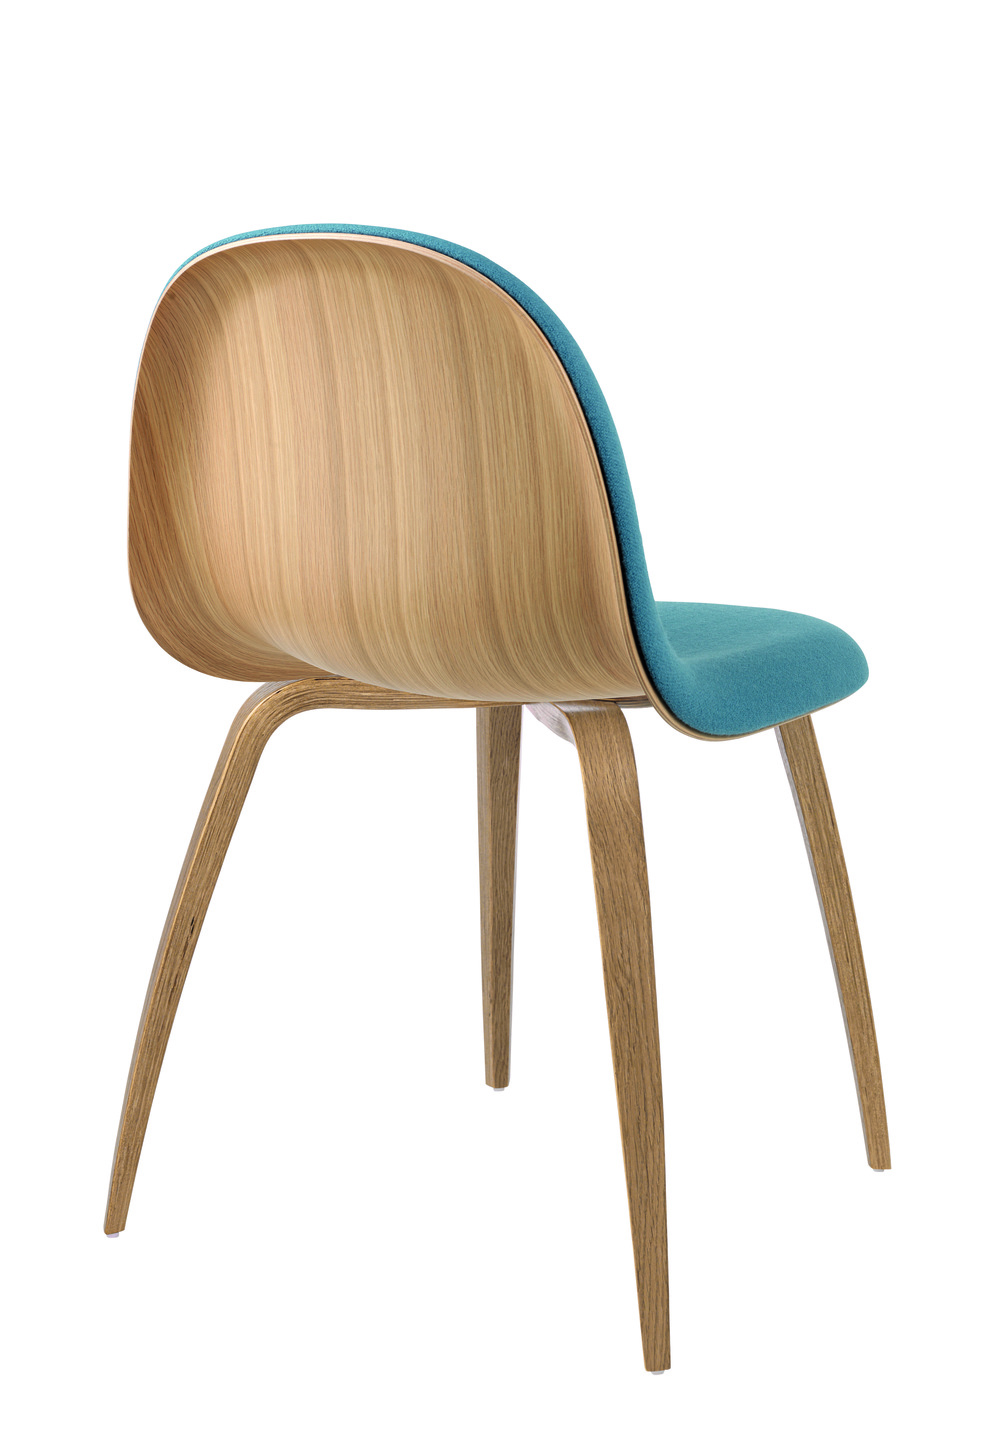 Gubi 52 Chair_Front Upholstered with Tonus colour 627 grey-blue_Oak Base_Back.jpg